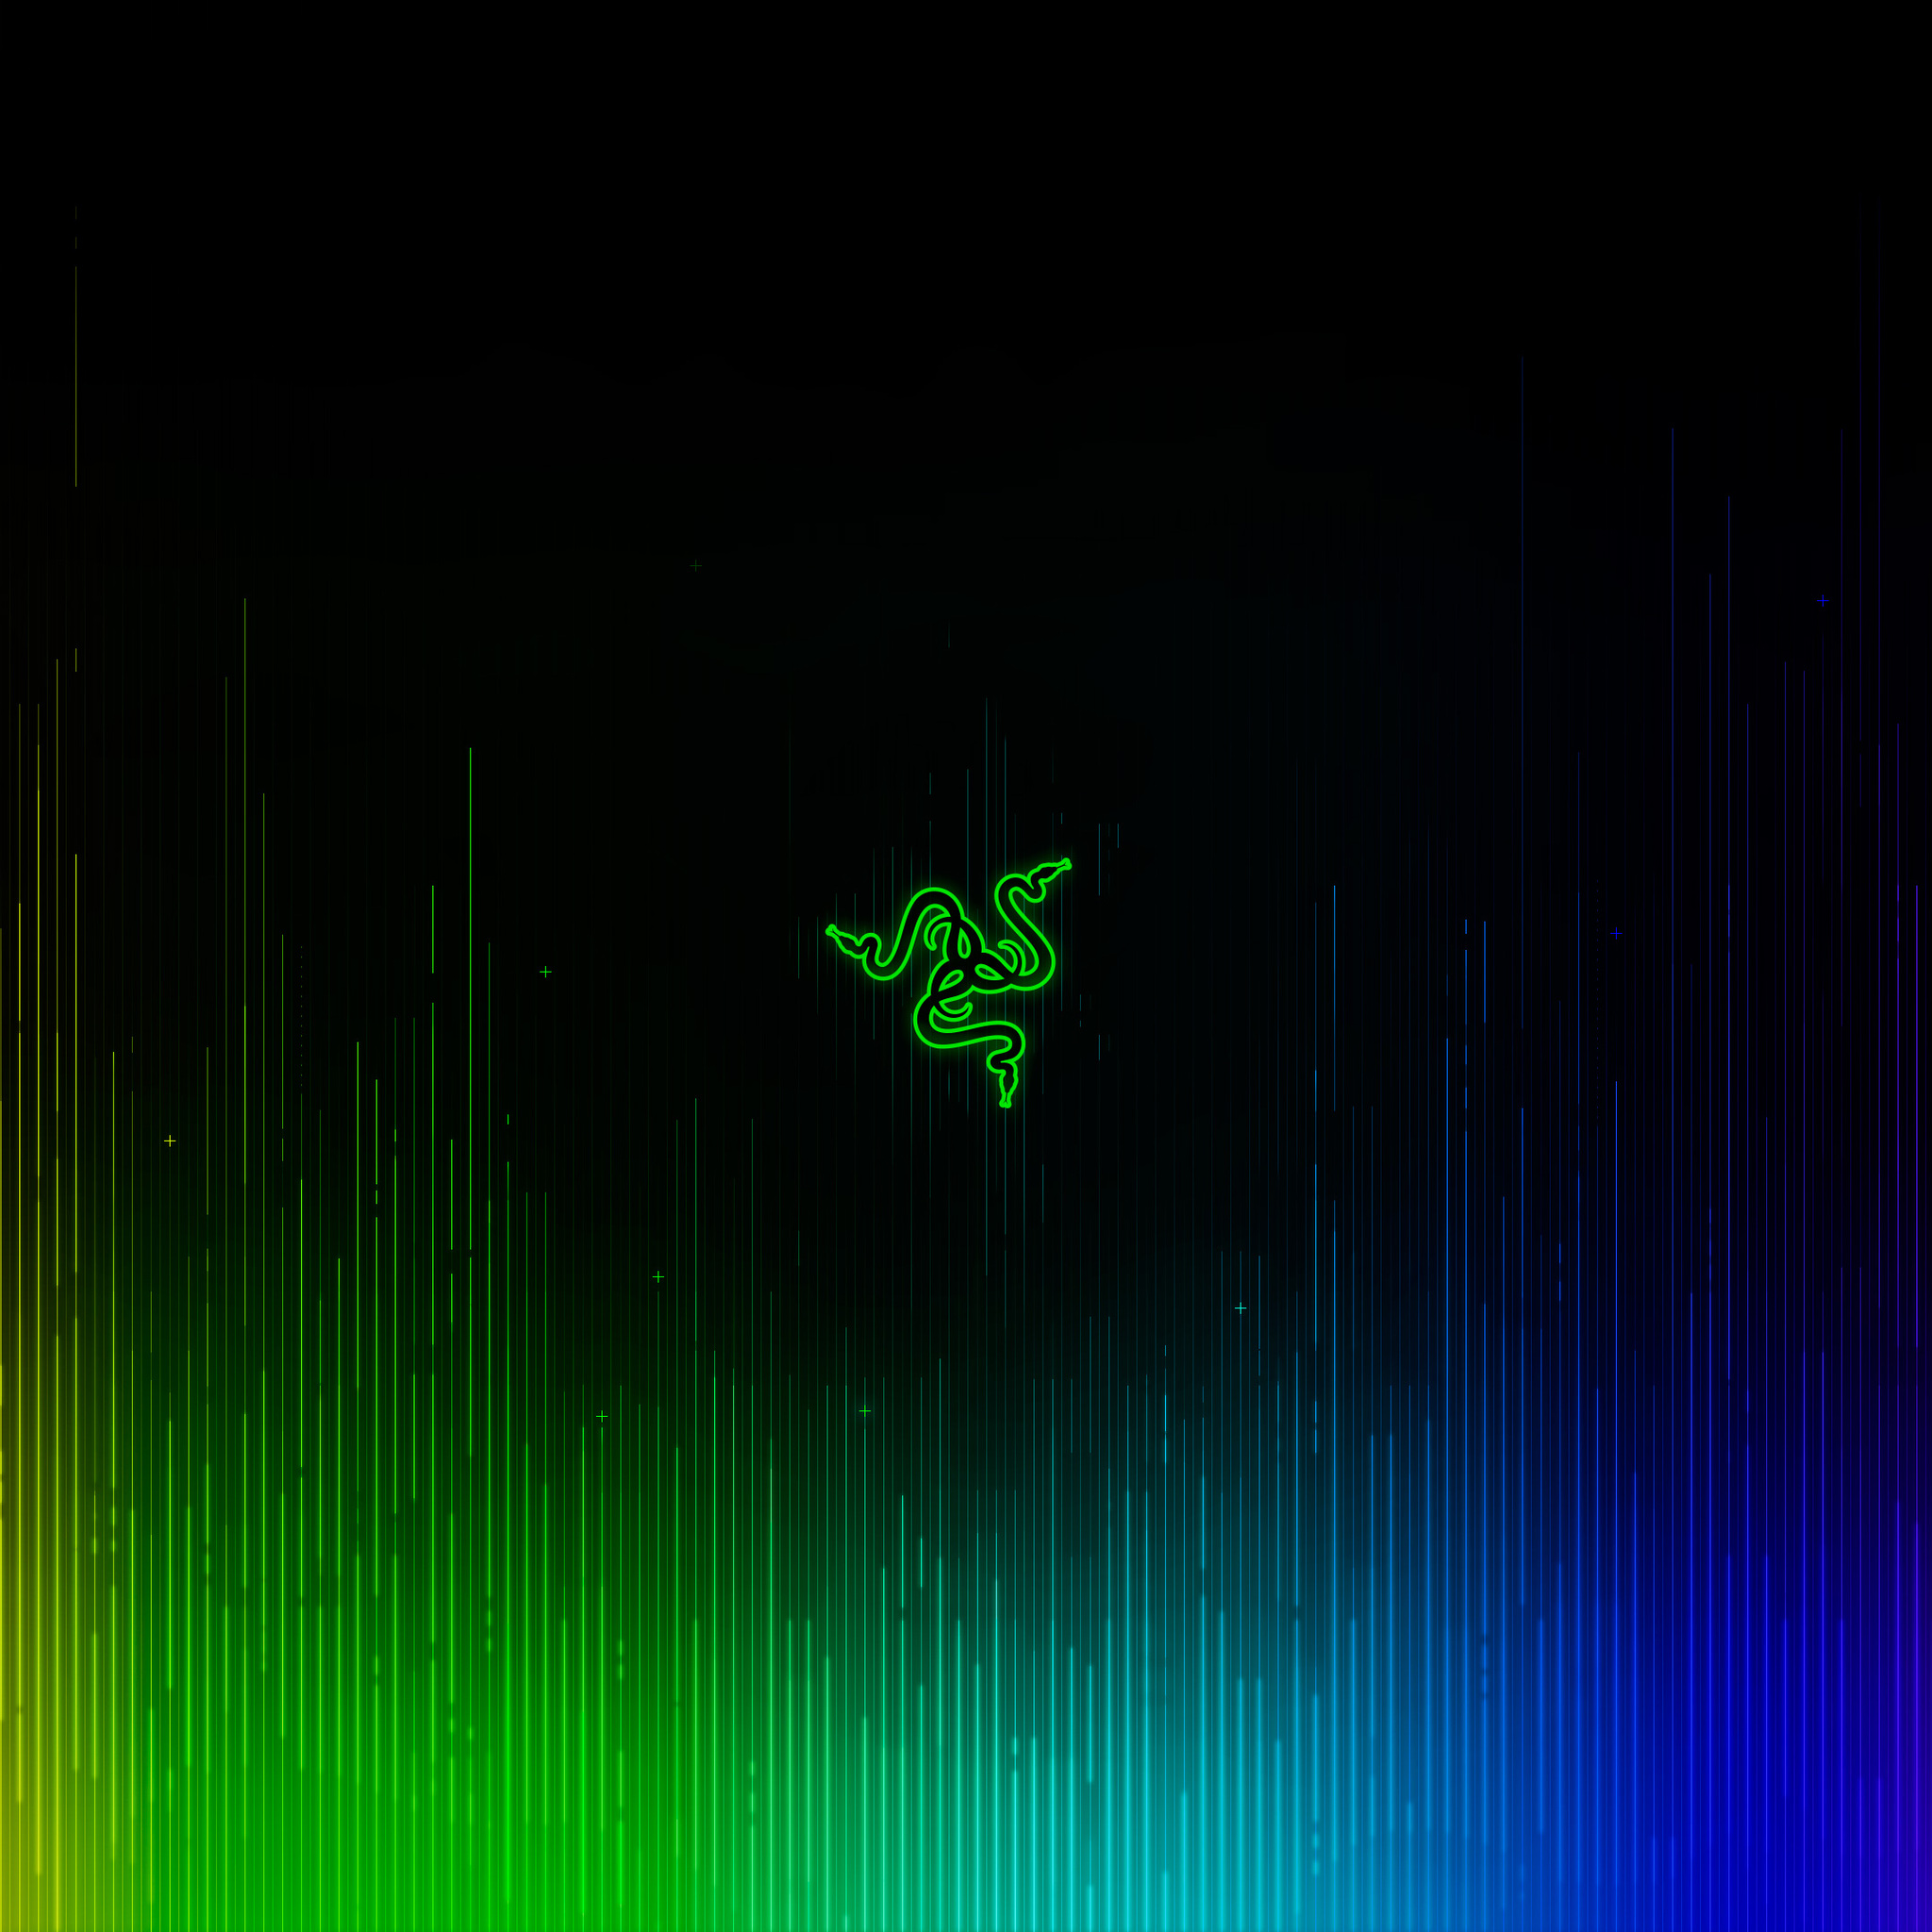 2048x2048 Razer 4k Ipad Air HD 4k Wallpapers, Images